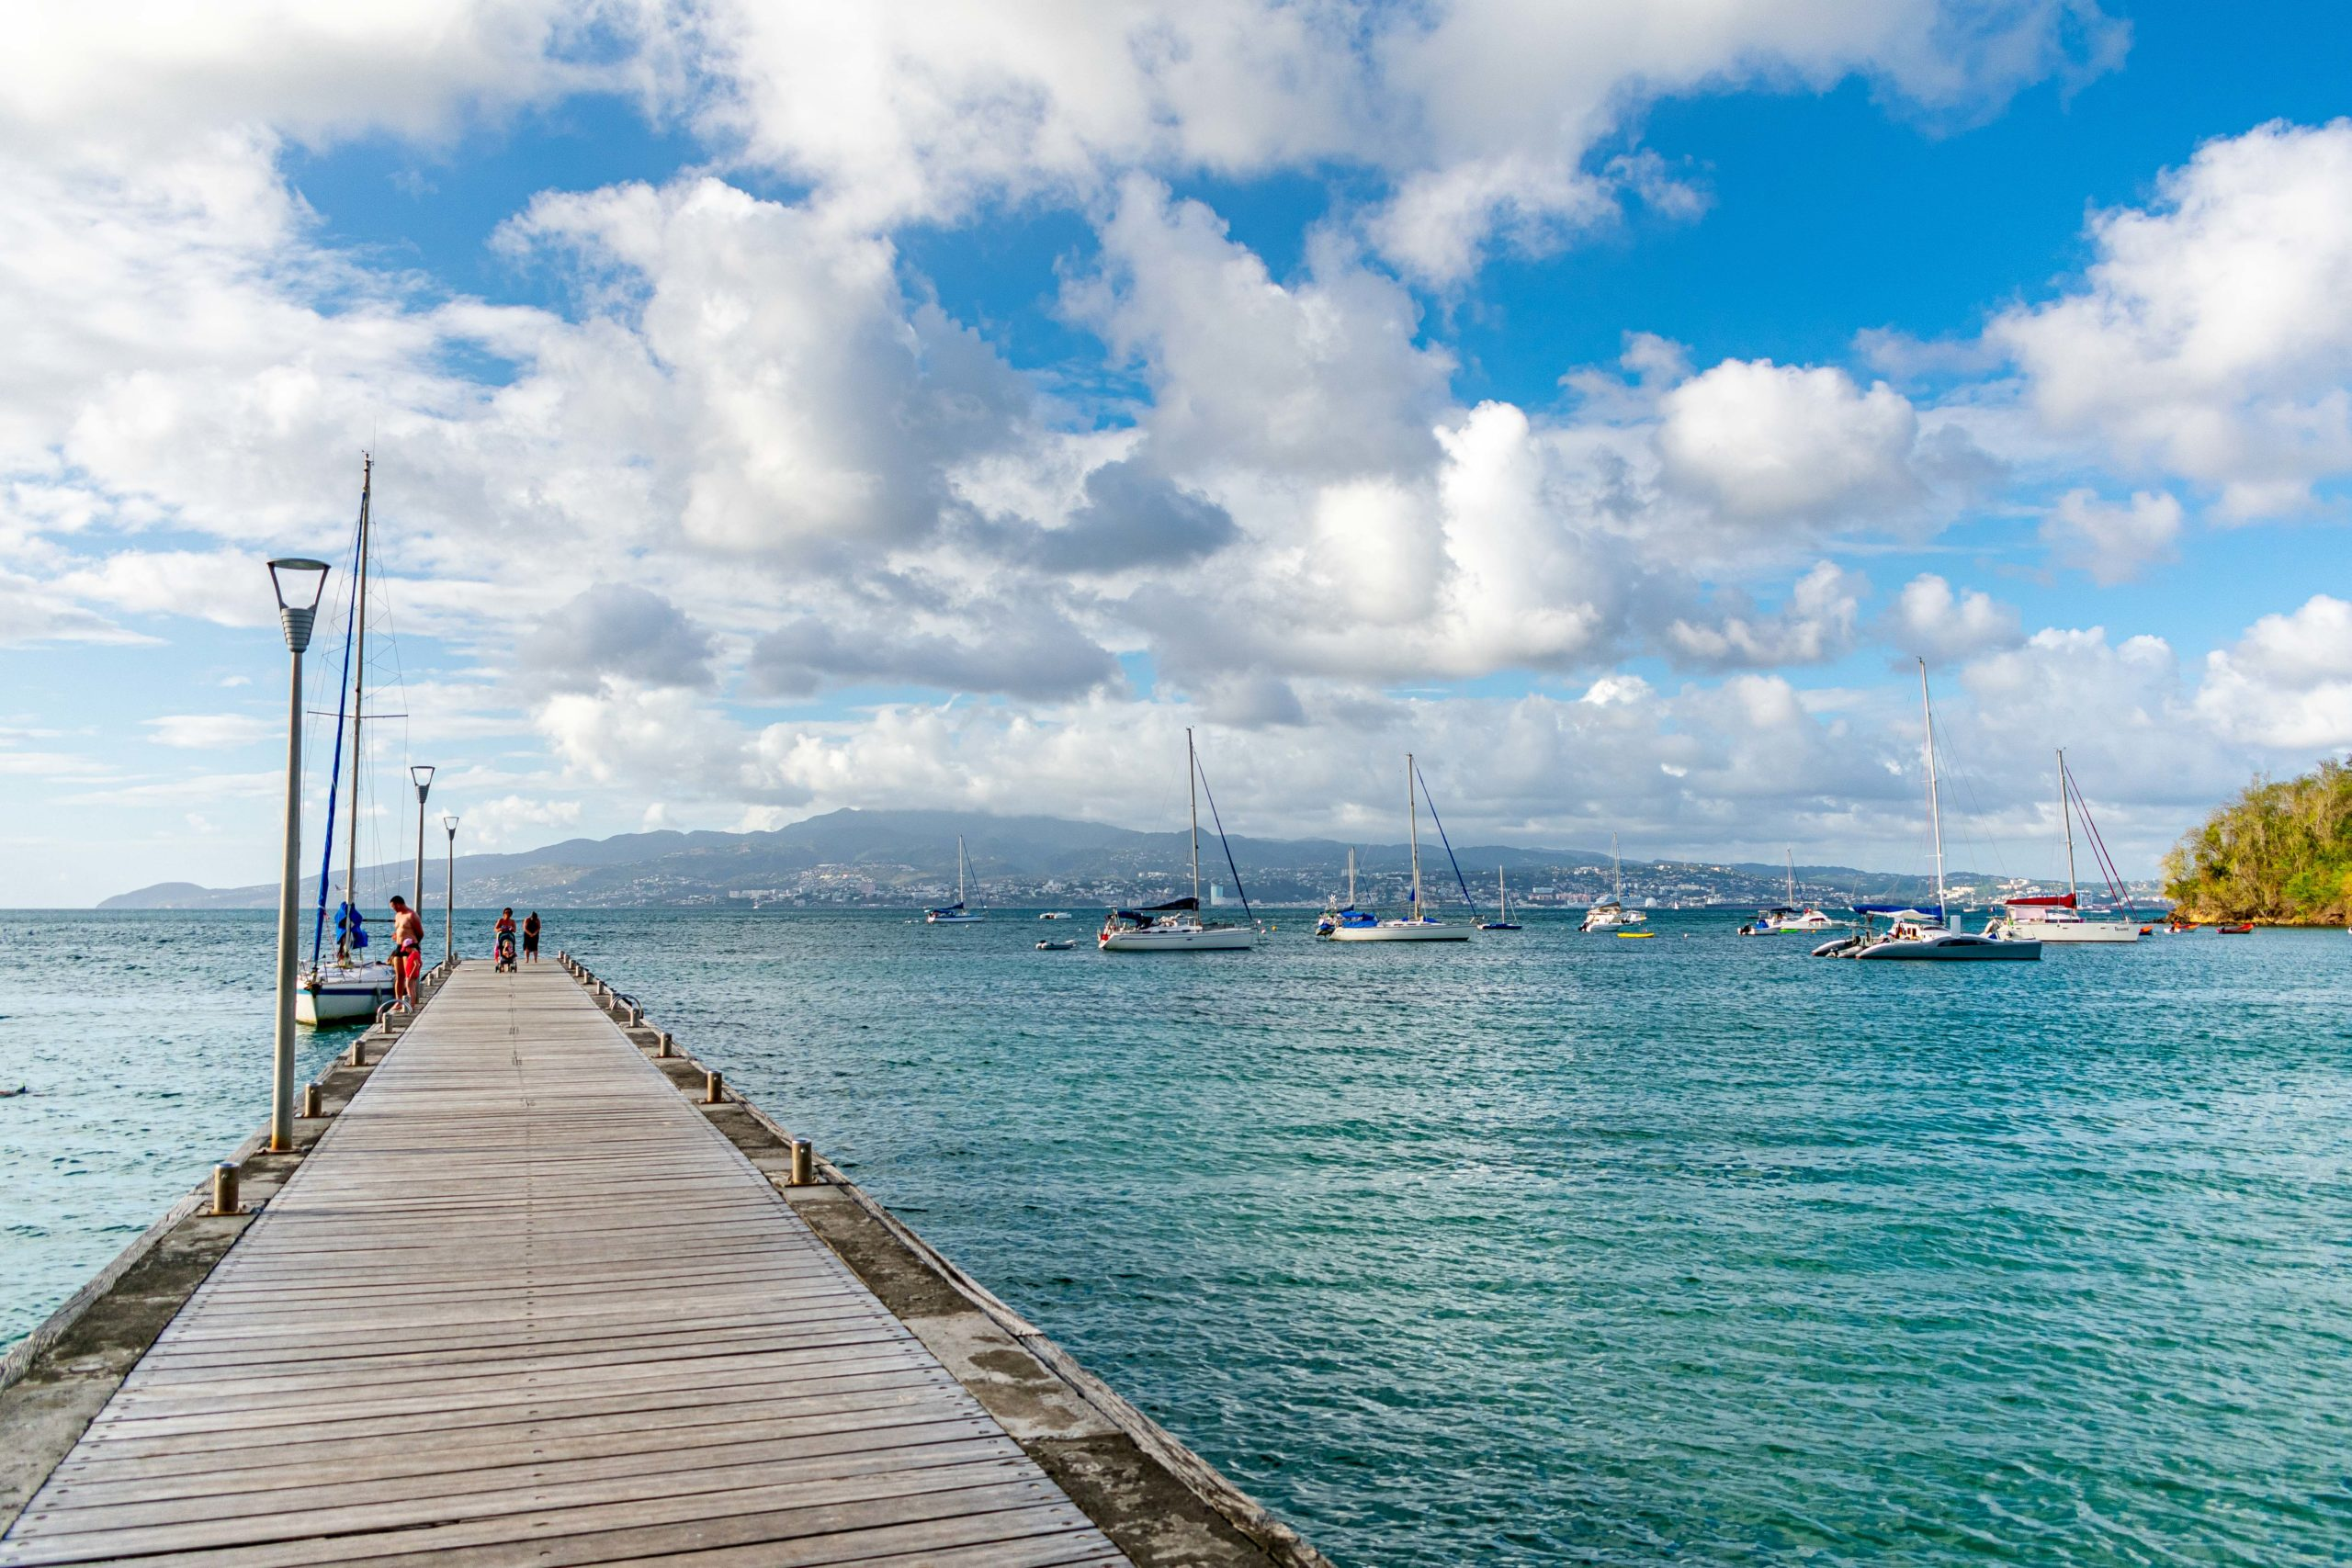 Martinique Jetties and Piers